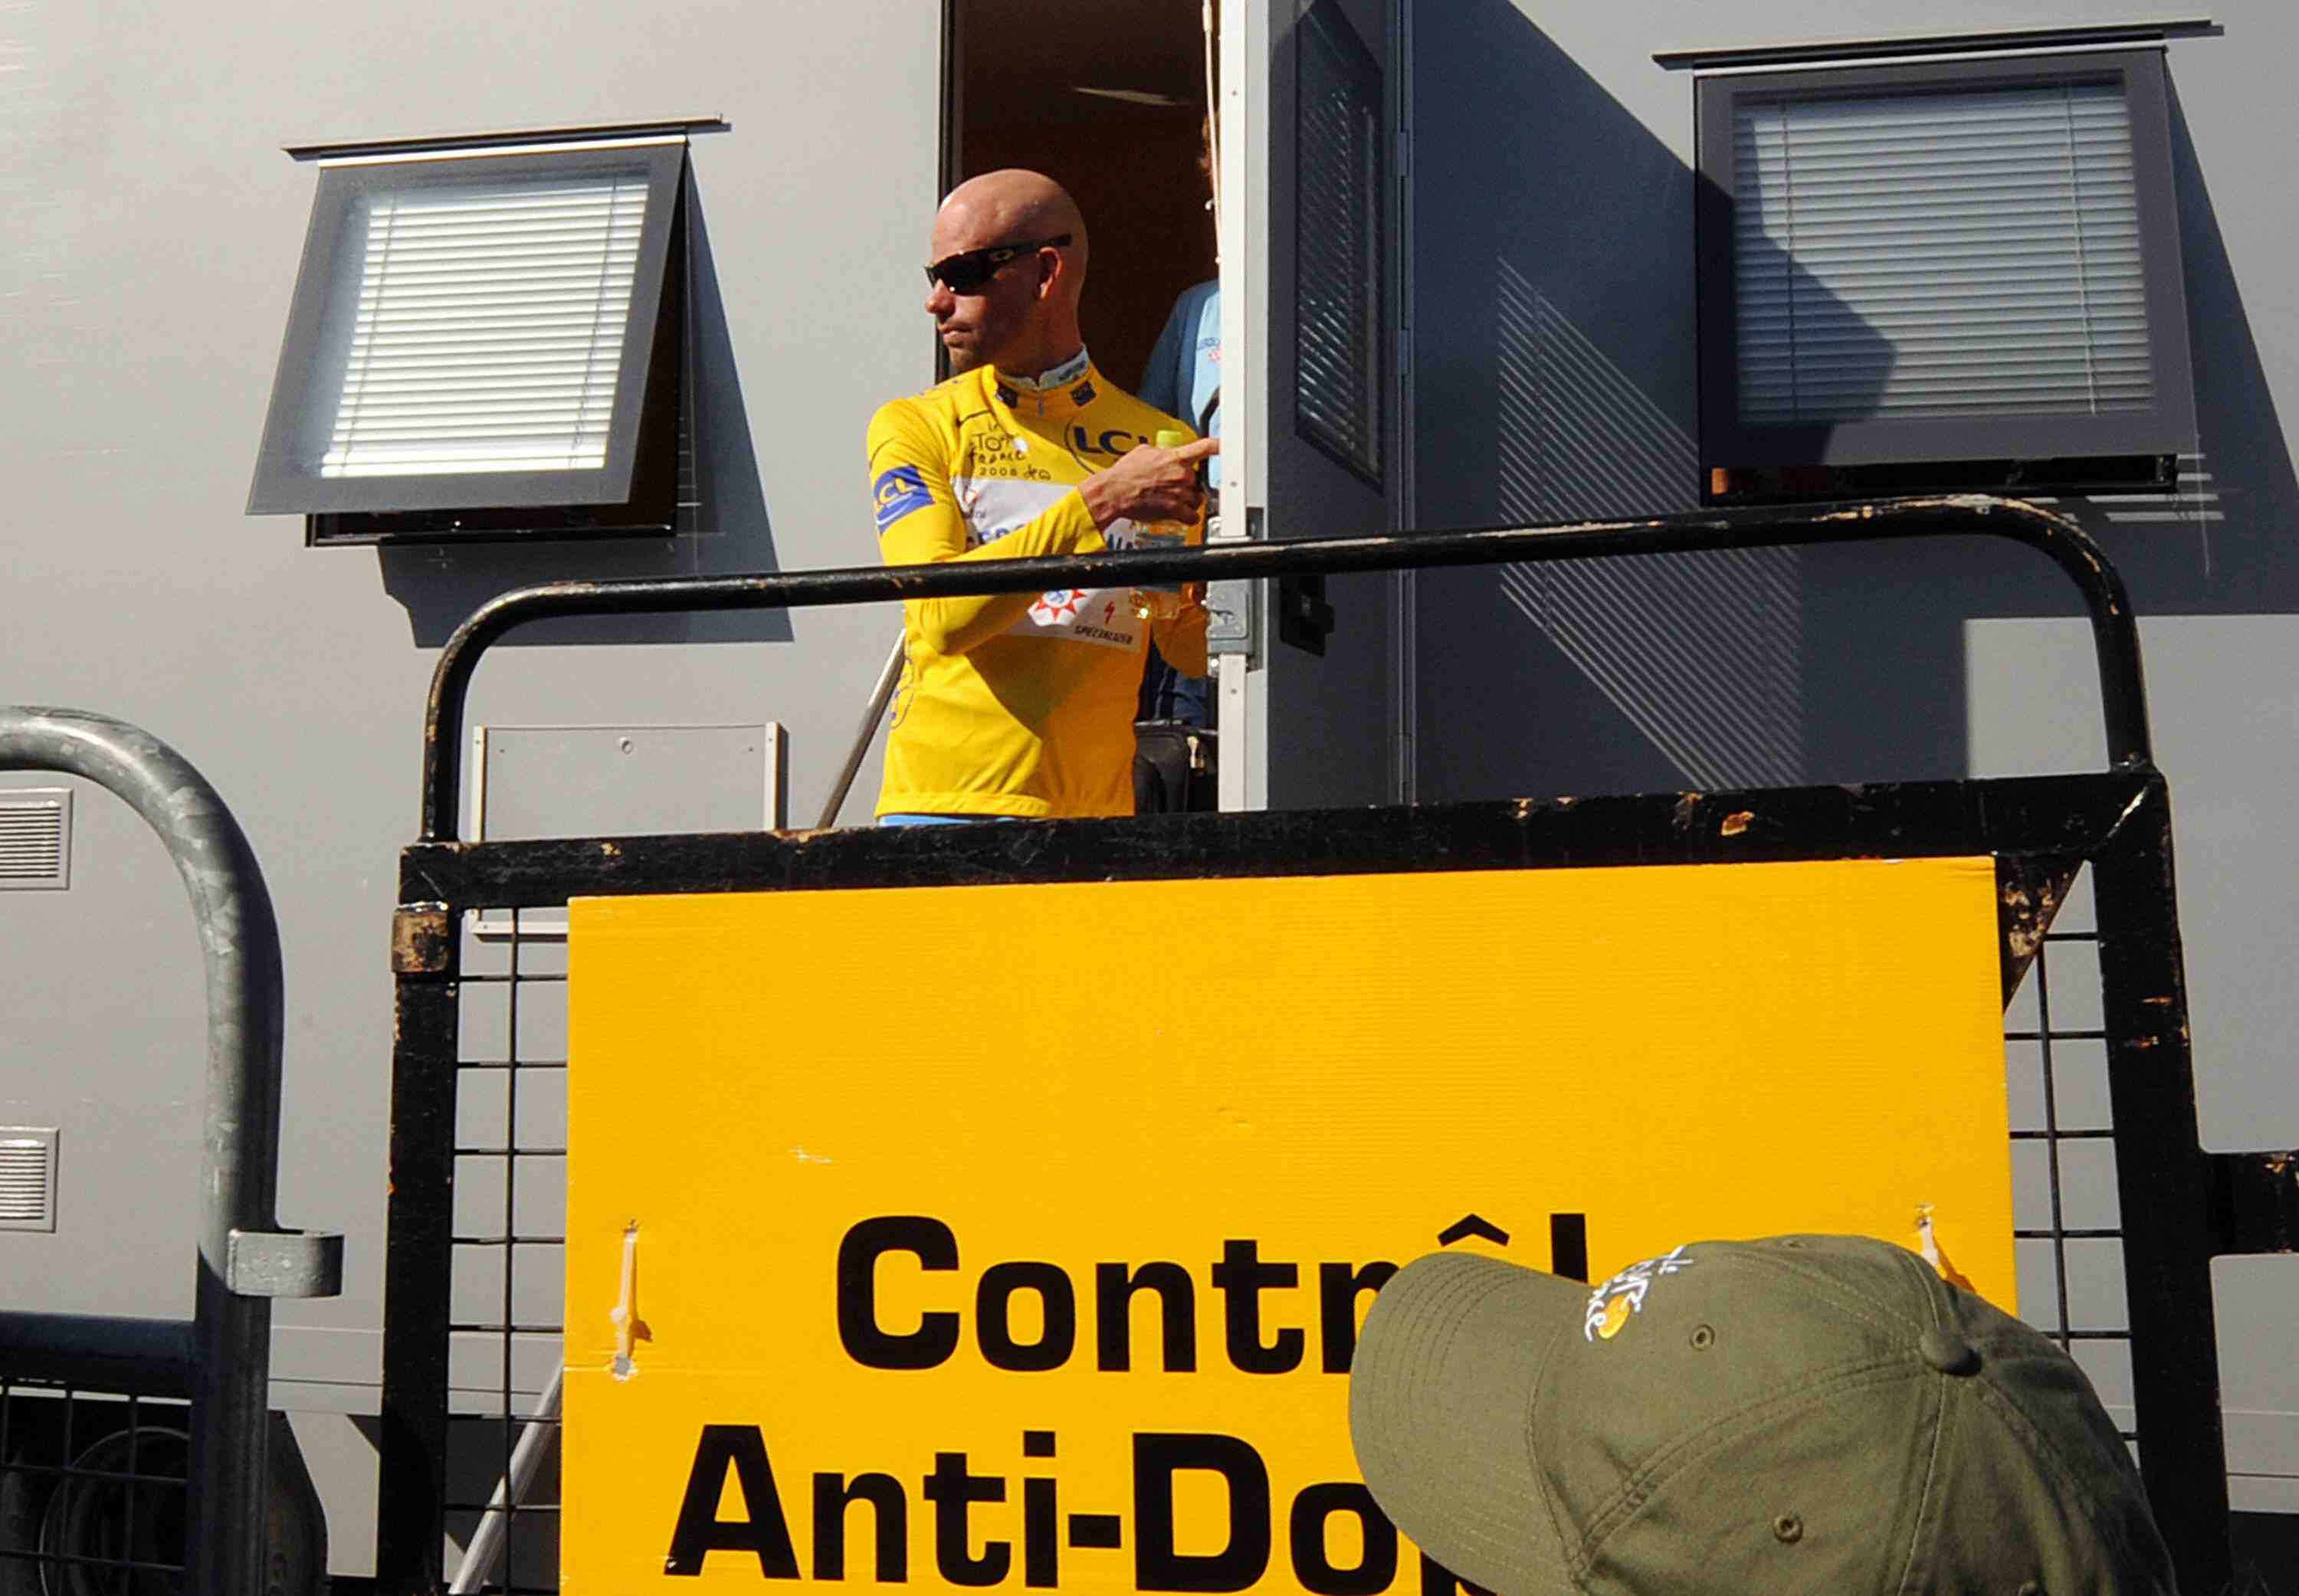 German road cyclist Stefan Schumacher leaves the doping control trailer during the early part of the 2008 Tour de France, wearing the leader's yellow jersey.